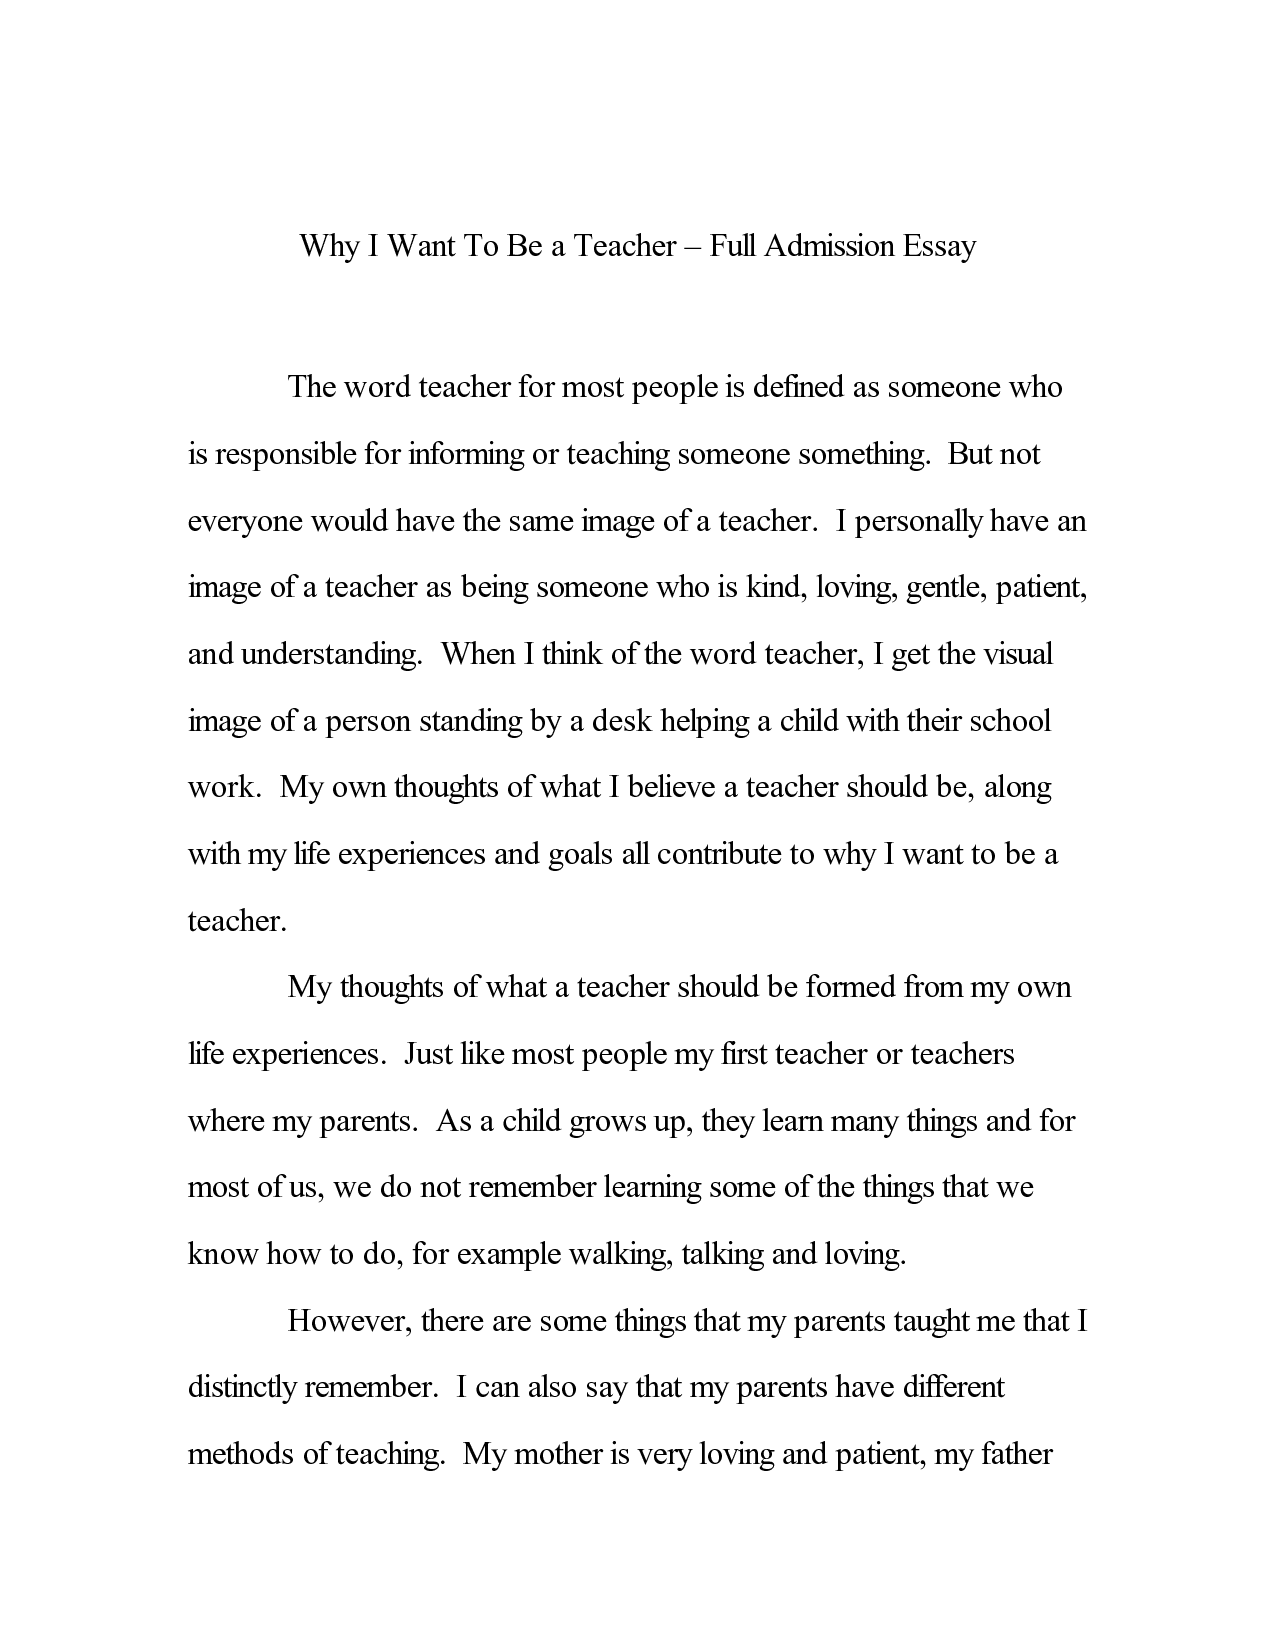 003 Why This College Essay Sample Example Fearsome I Chose Our Full